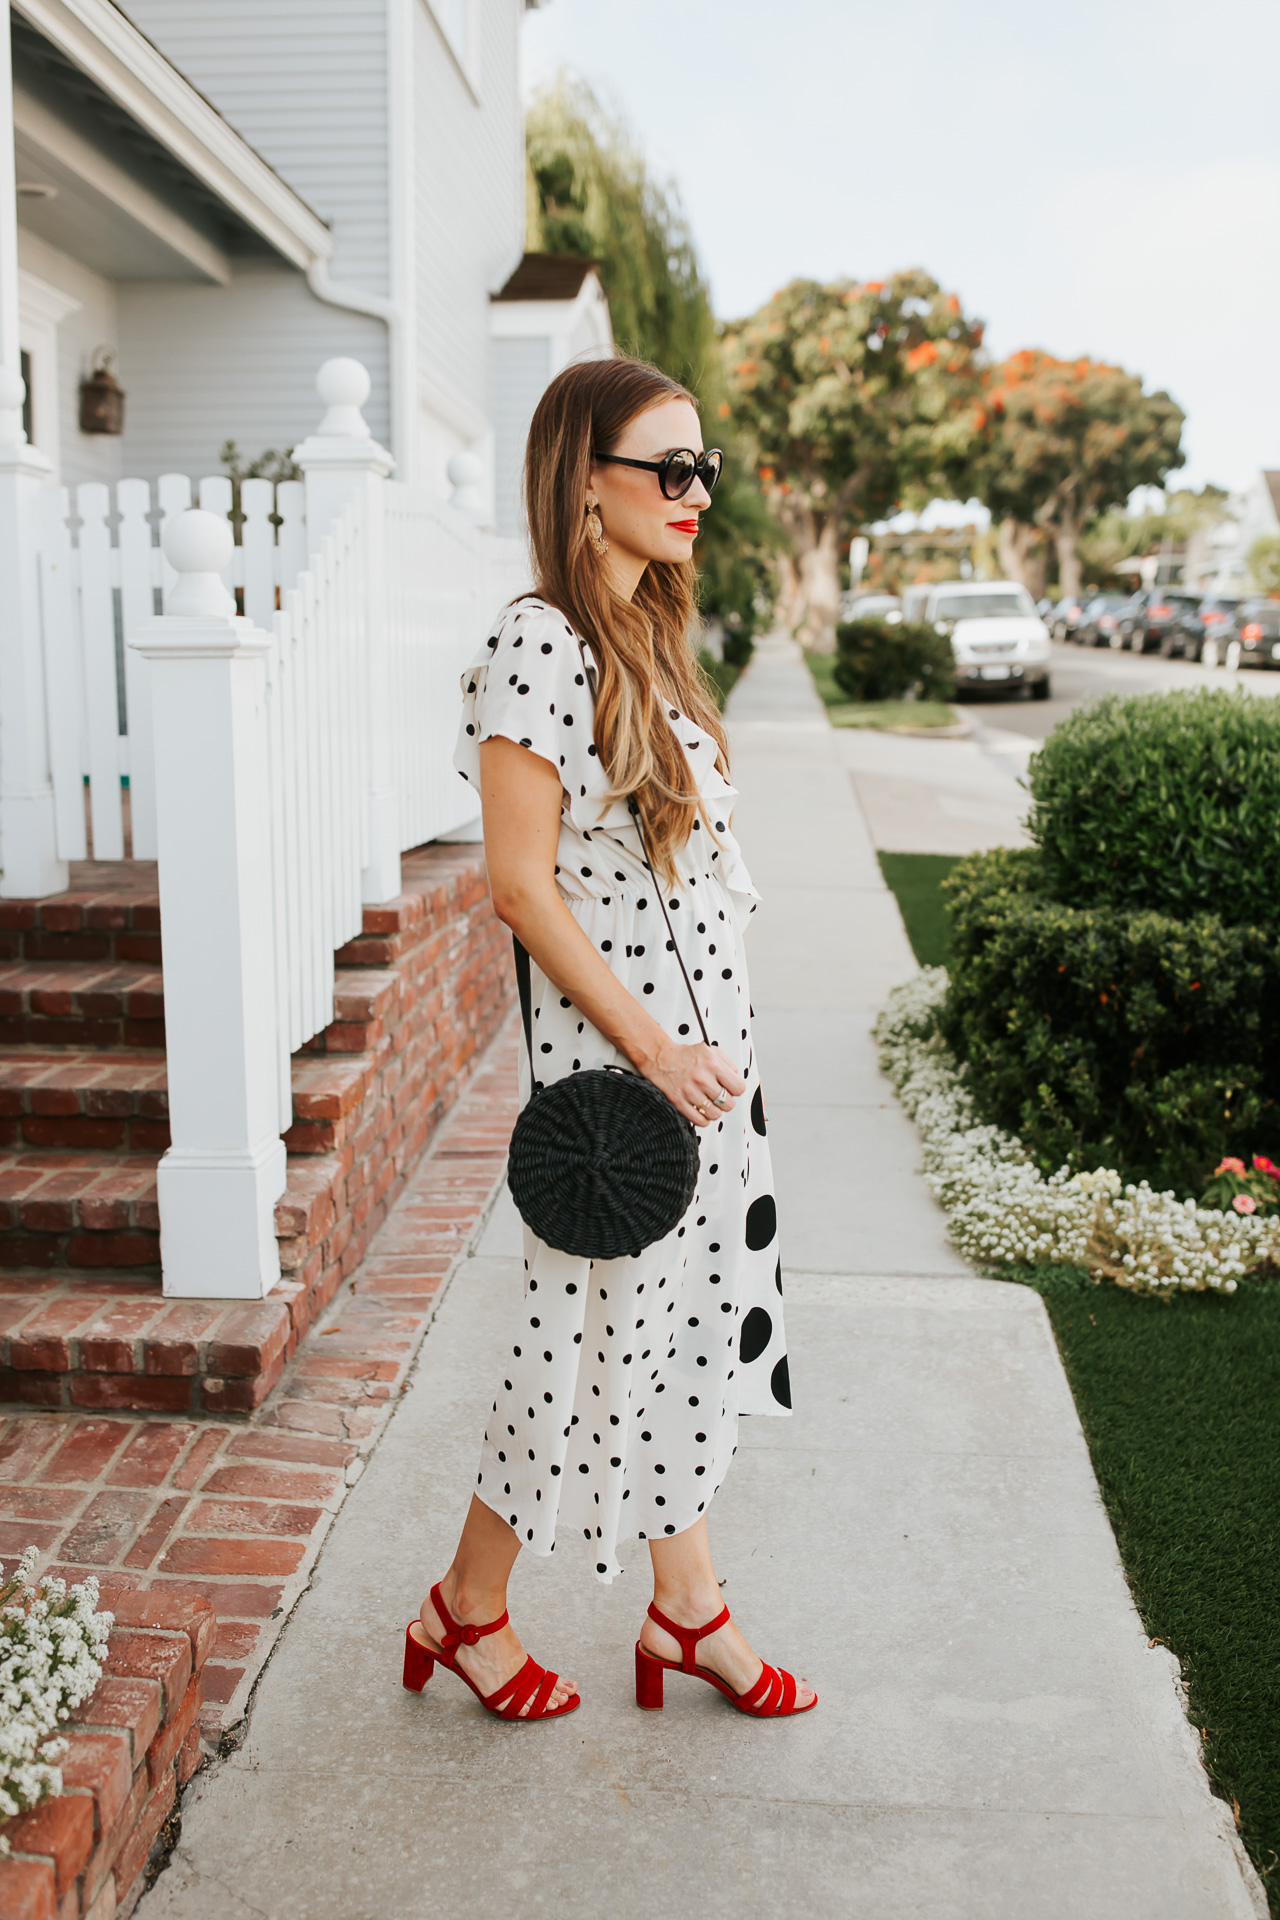 Red suede chunky heels with black and white polkadot dress. | M Loves M @marmar